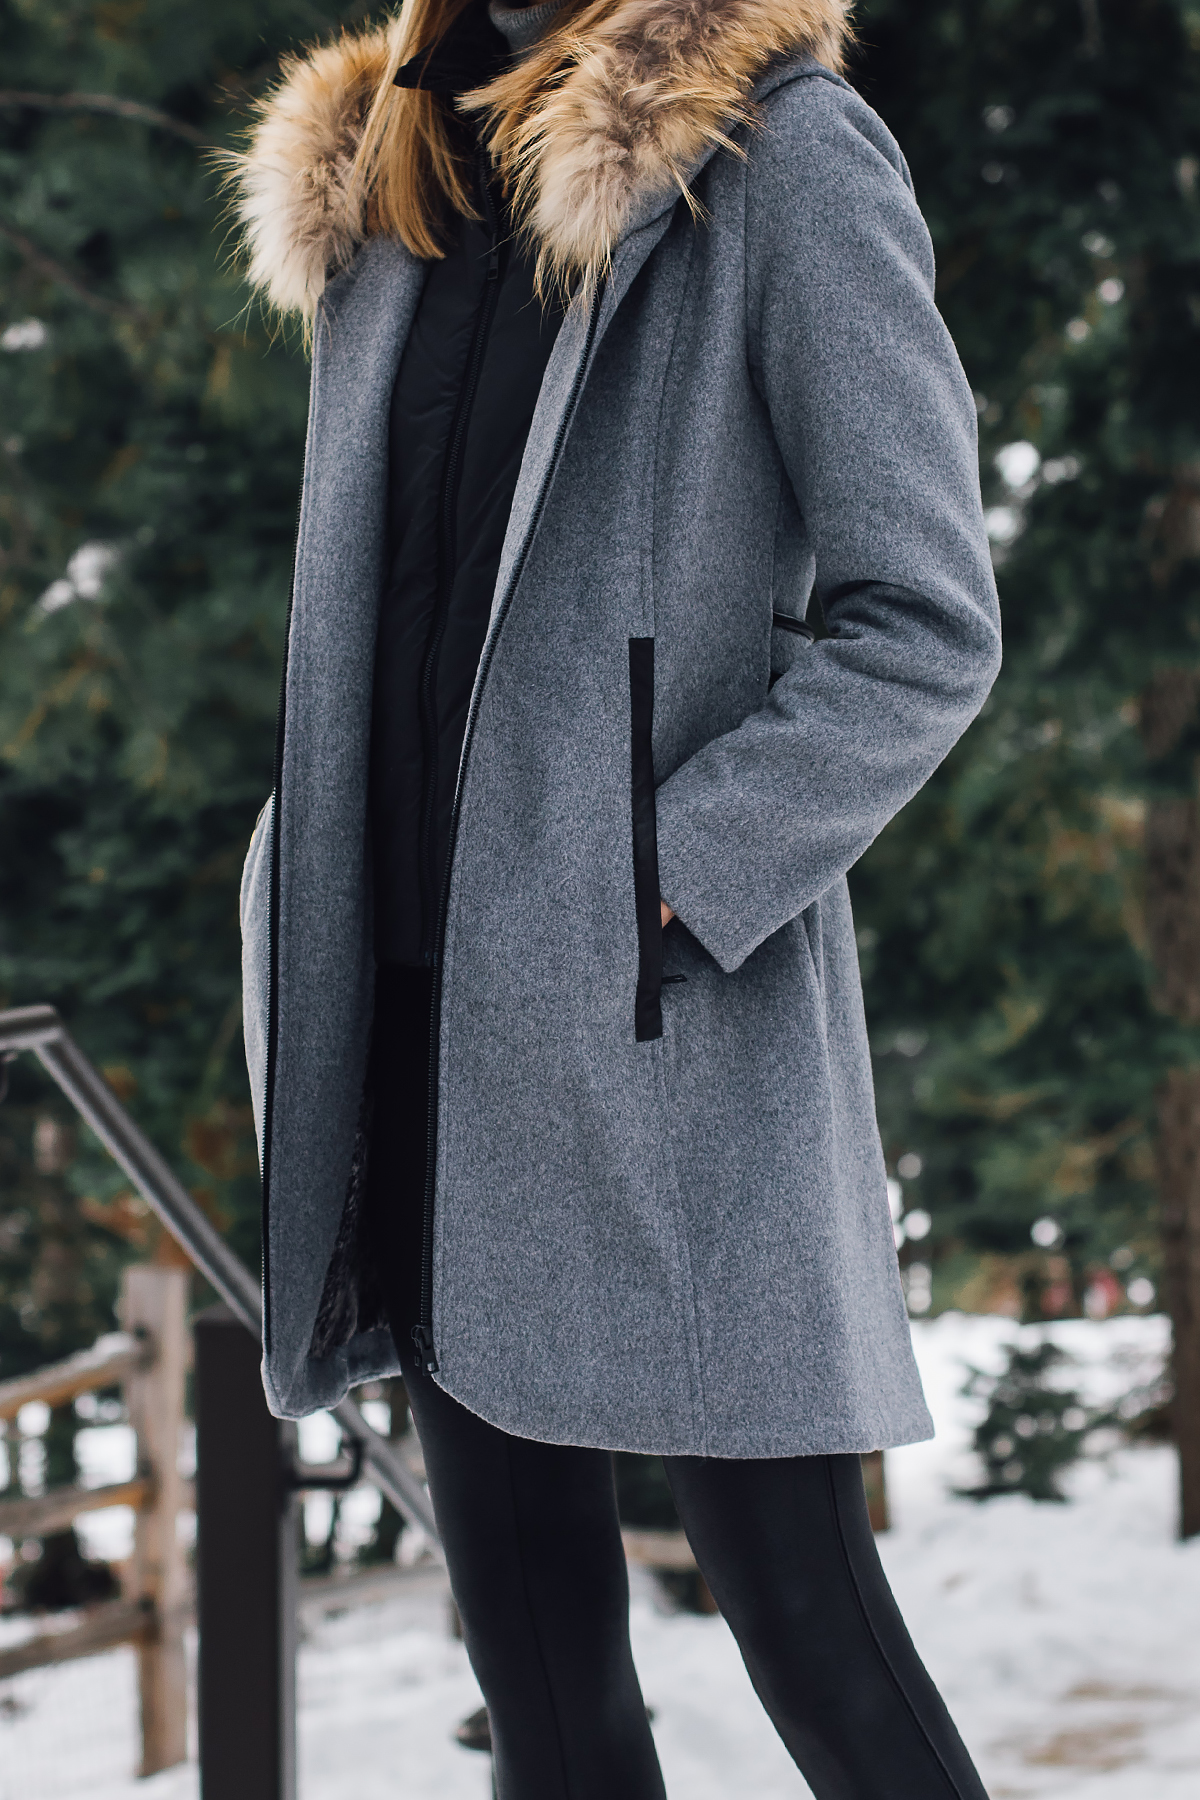 Blonde Woman Wearing Grey Wool Coat with Faux Fur Trim Fashion Jackson San Diego Fashion Blogger Lake Tahoe Winter Outfit